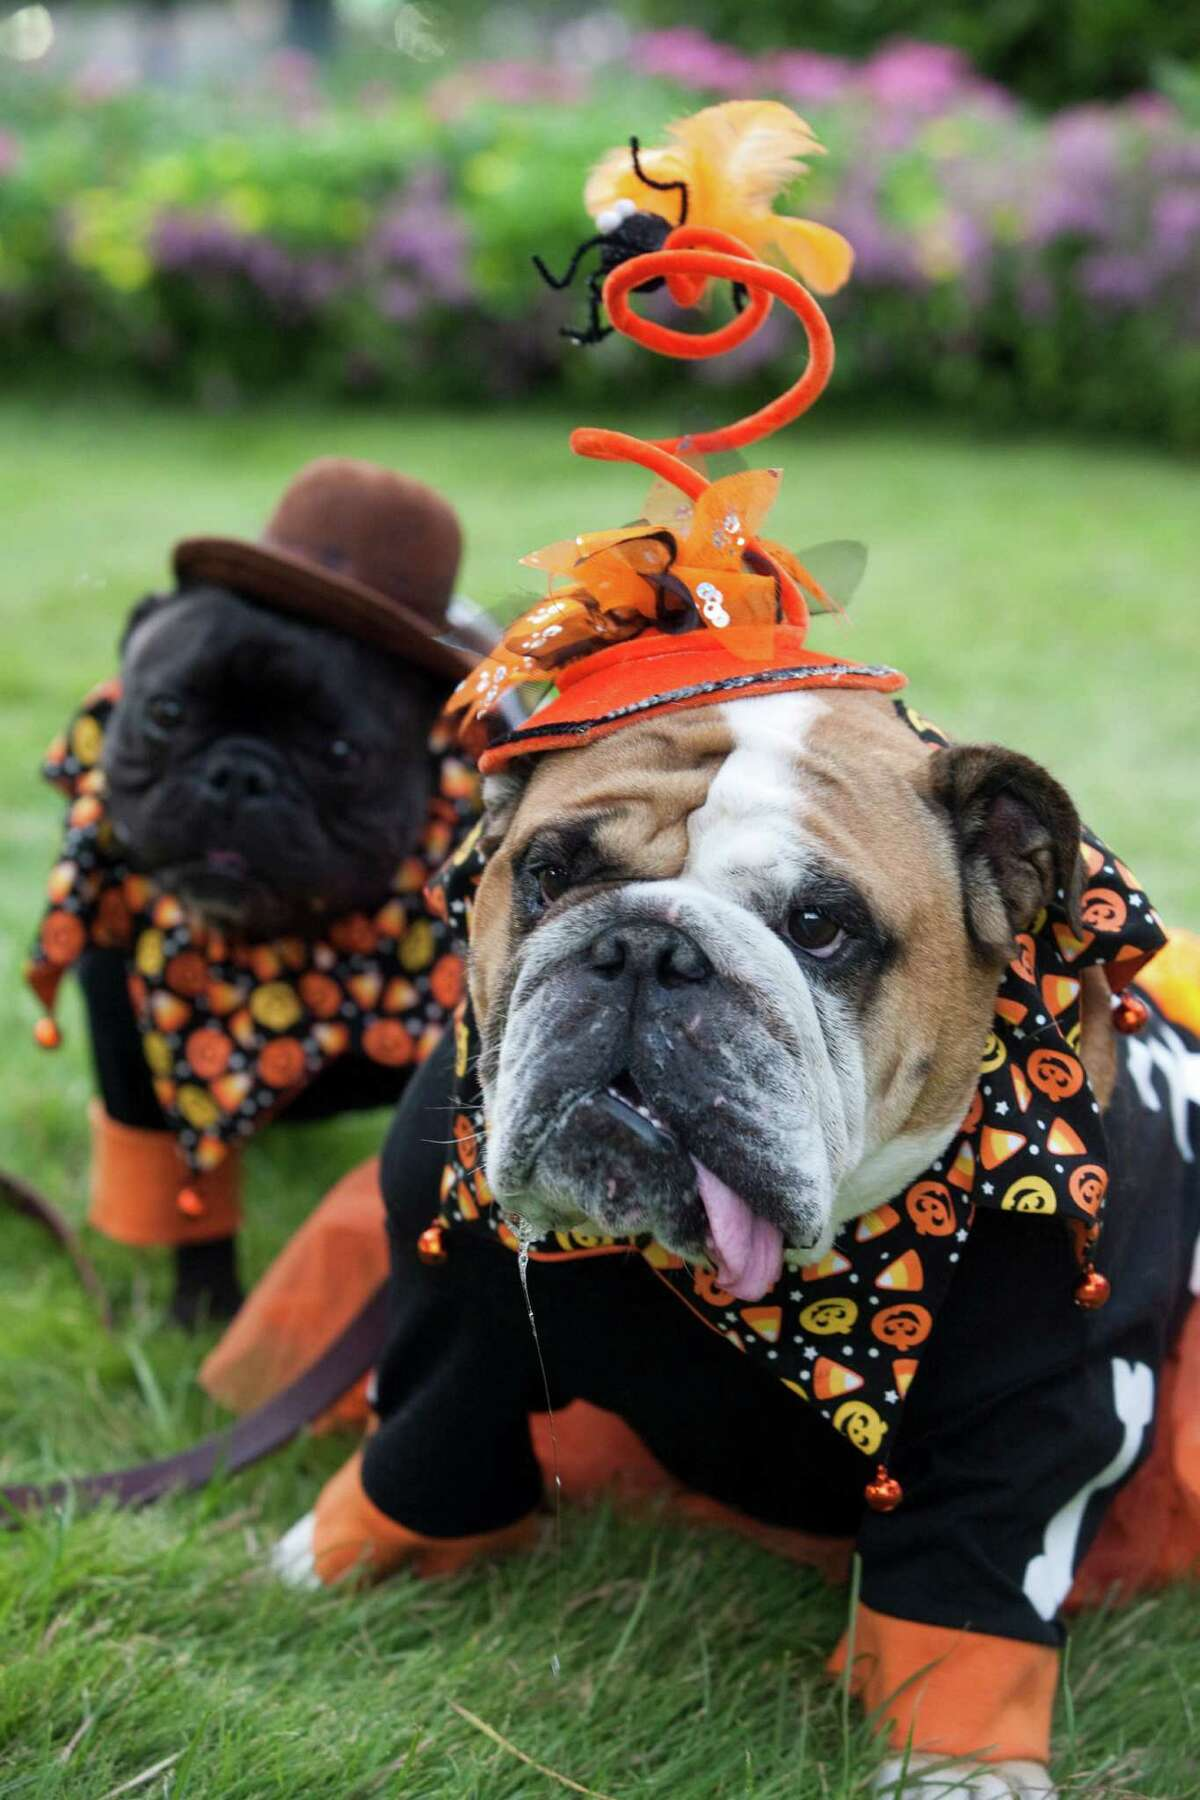 Lee Hileman's Louie, left, and Gabby, both won first place at Barnaby's Paw Parade and Costume Contest., Oct. 13, 2012 in Houston at Market Square.